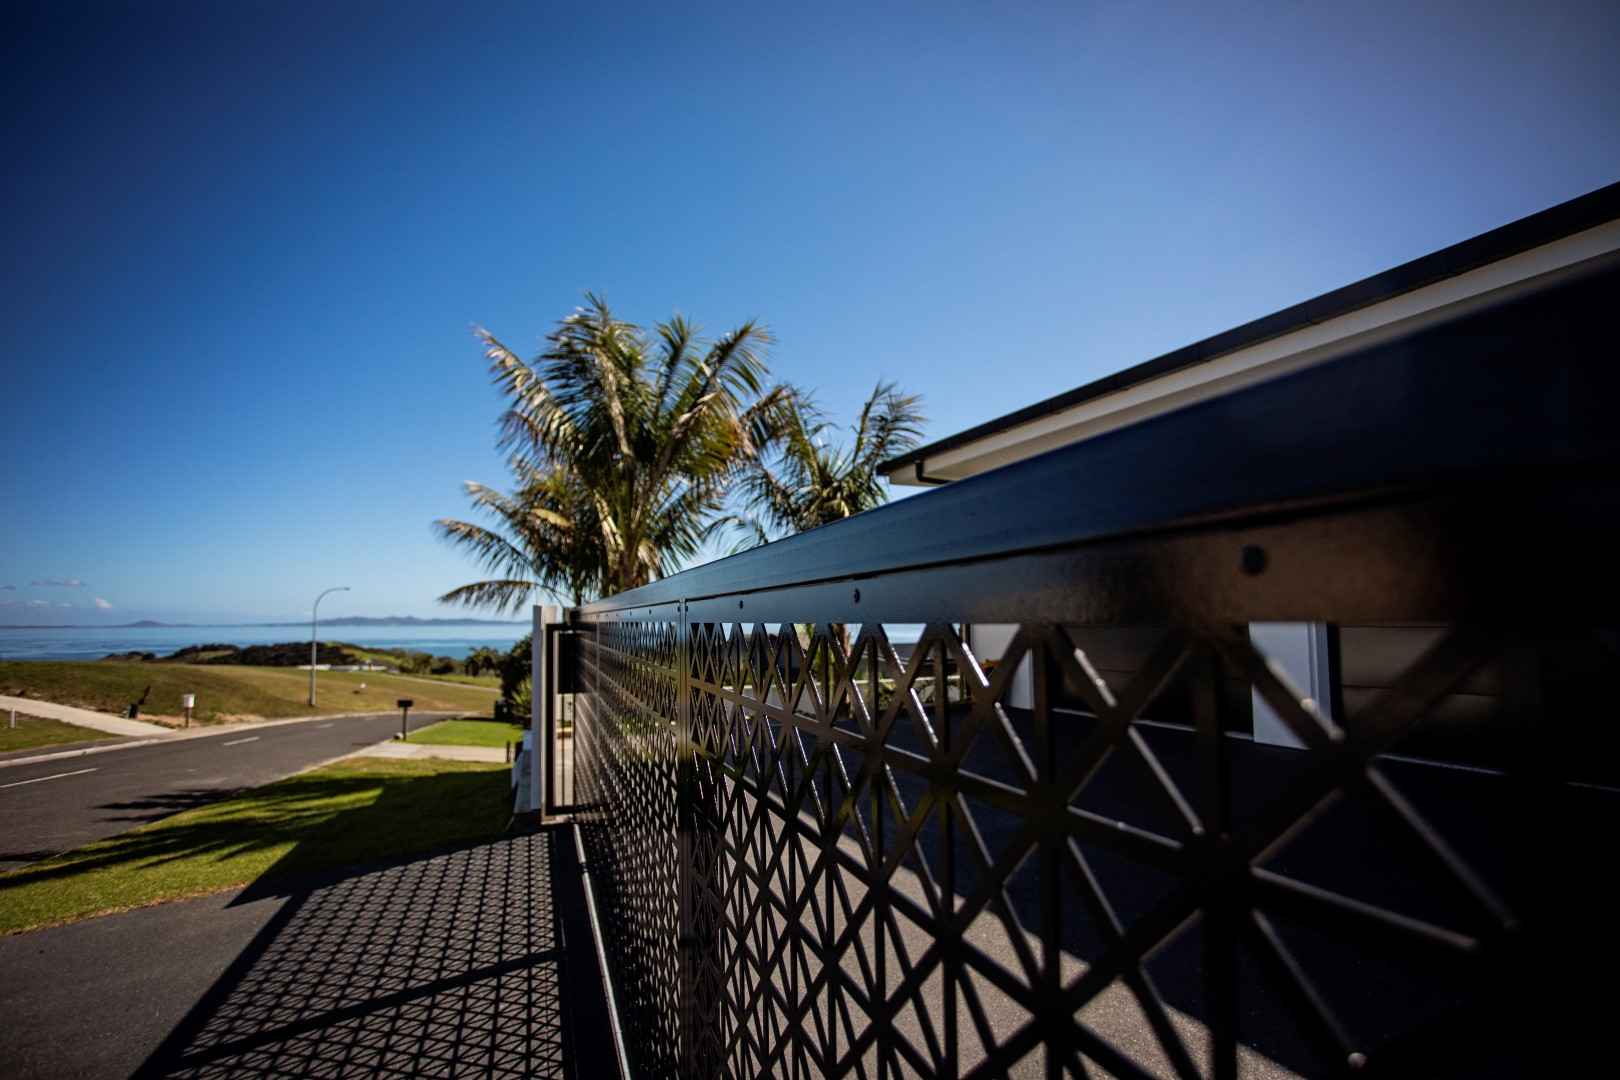 front-gate-entry-water-jet-cut-driveway-arcline-architecture